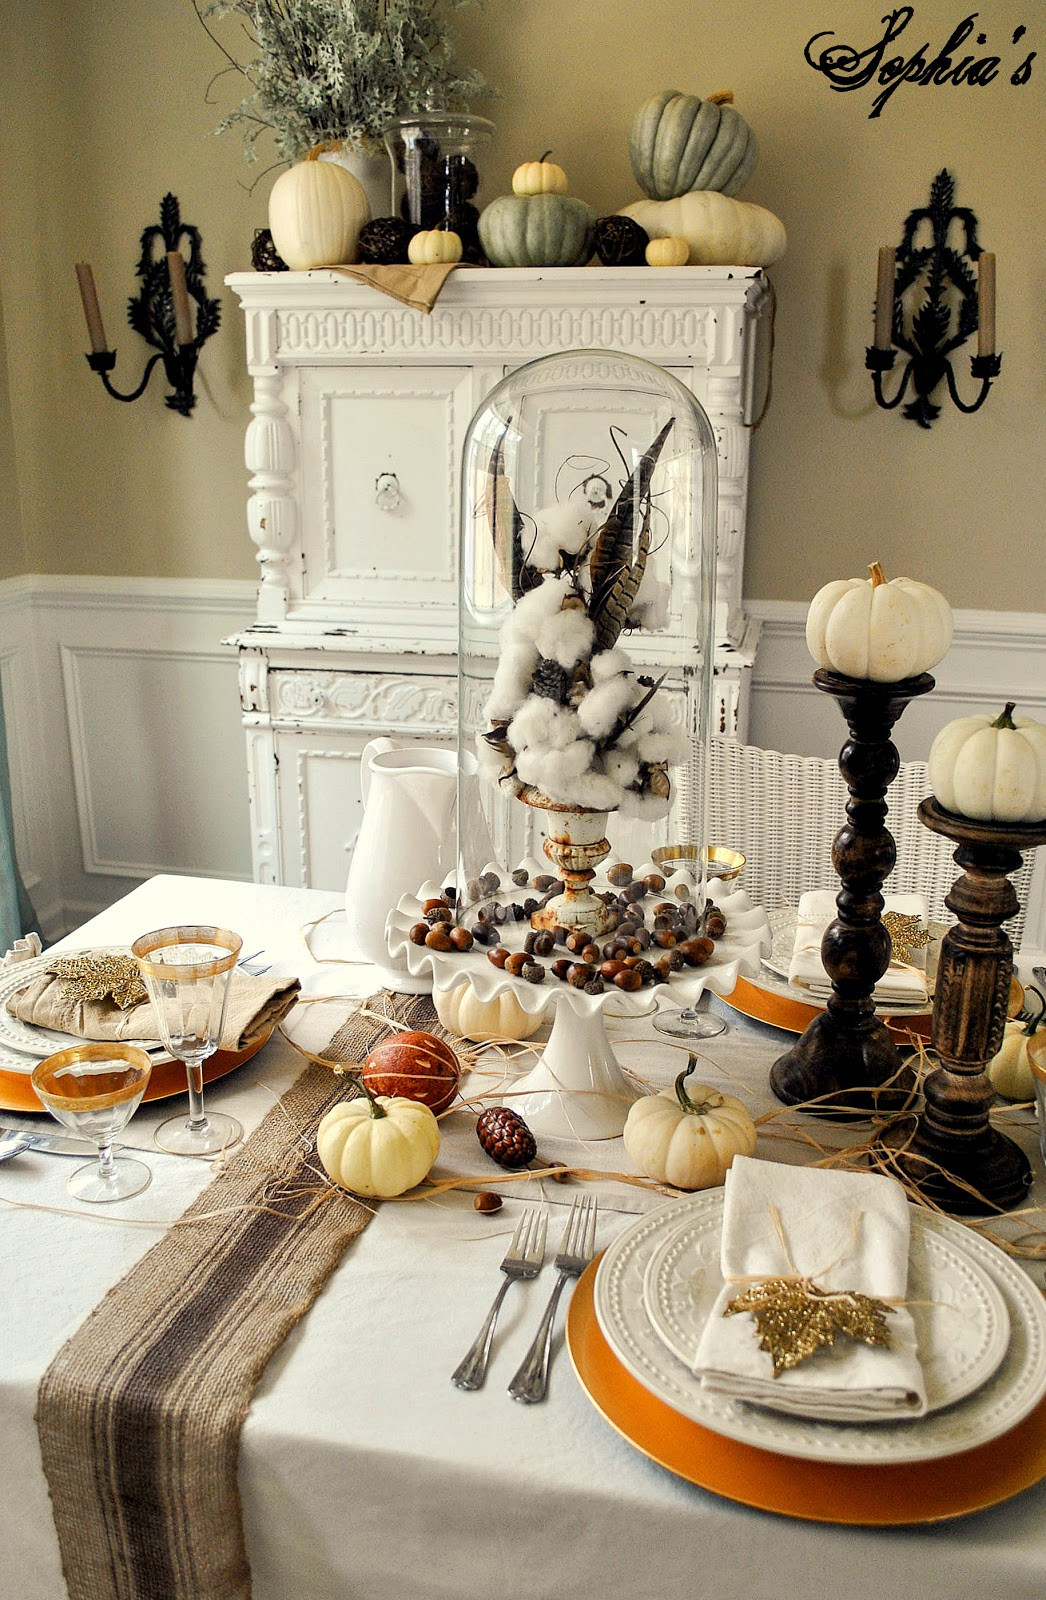 Thanksgiving Table Decor Ideas  Sophia s Thanksgiving Table Setting